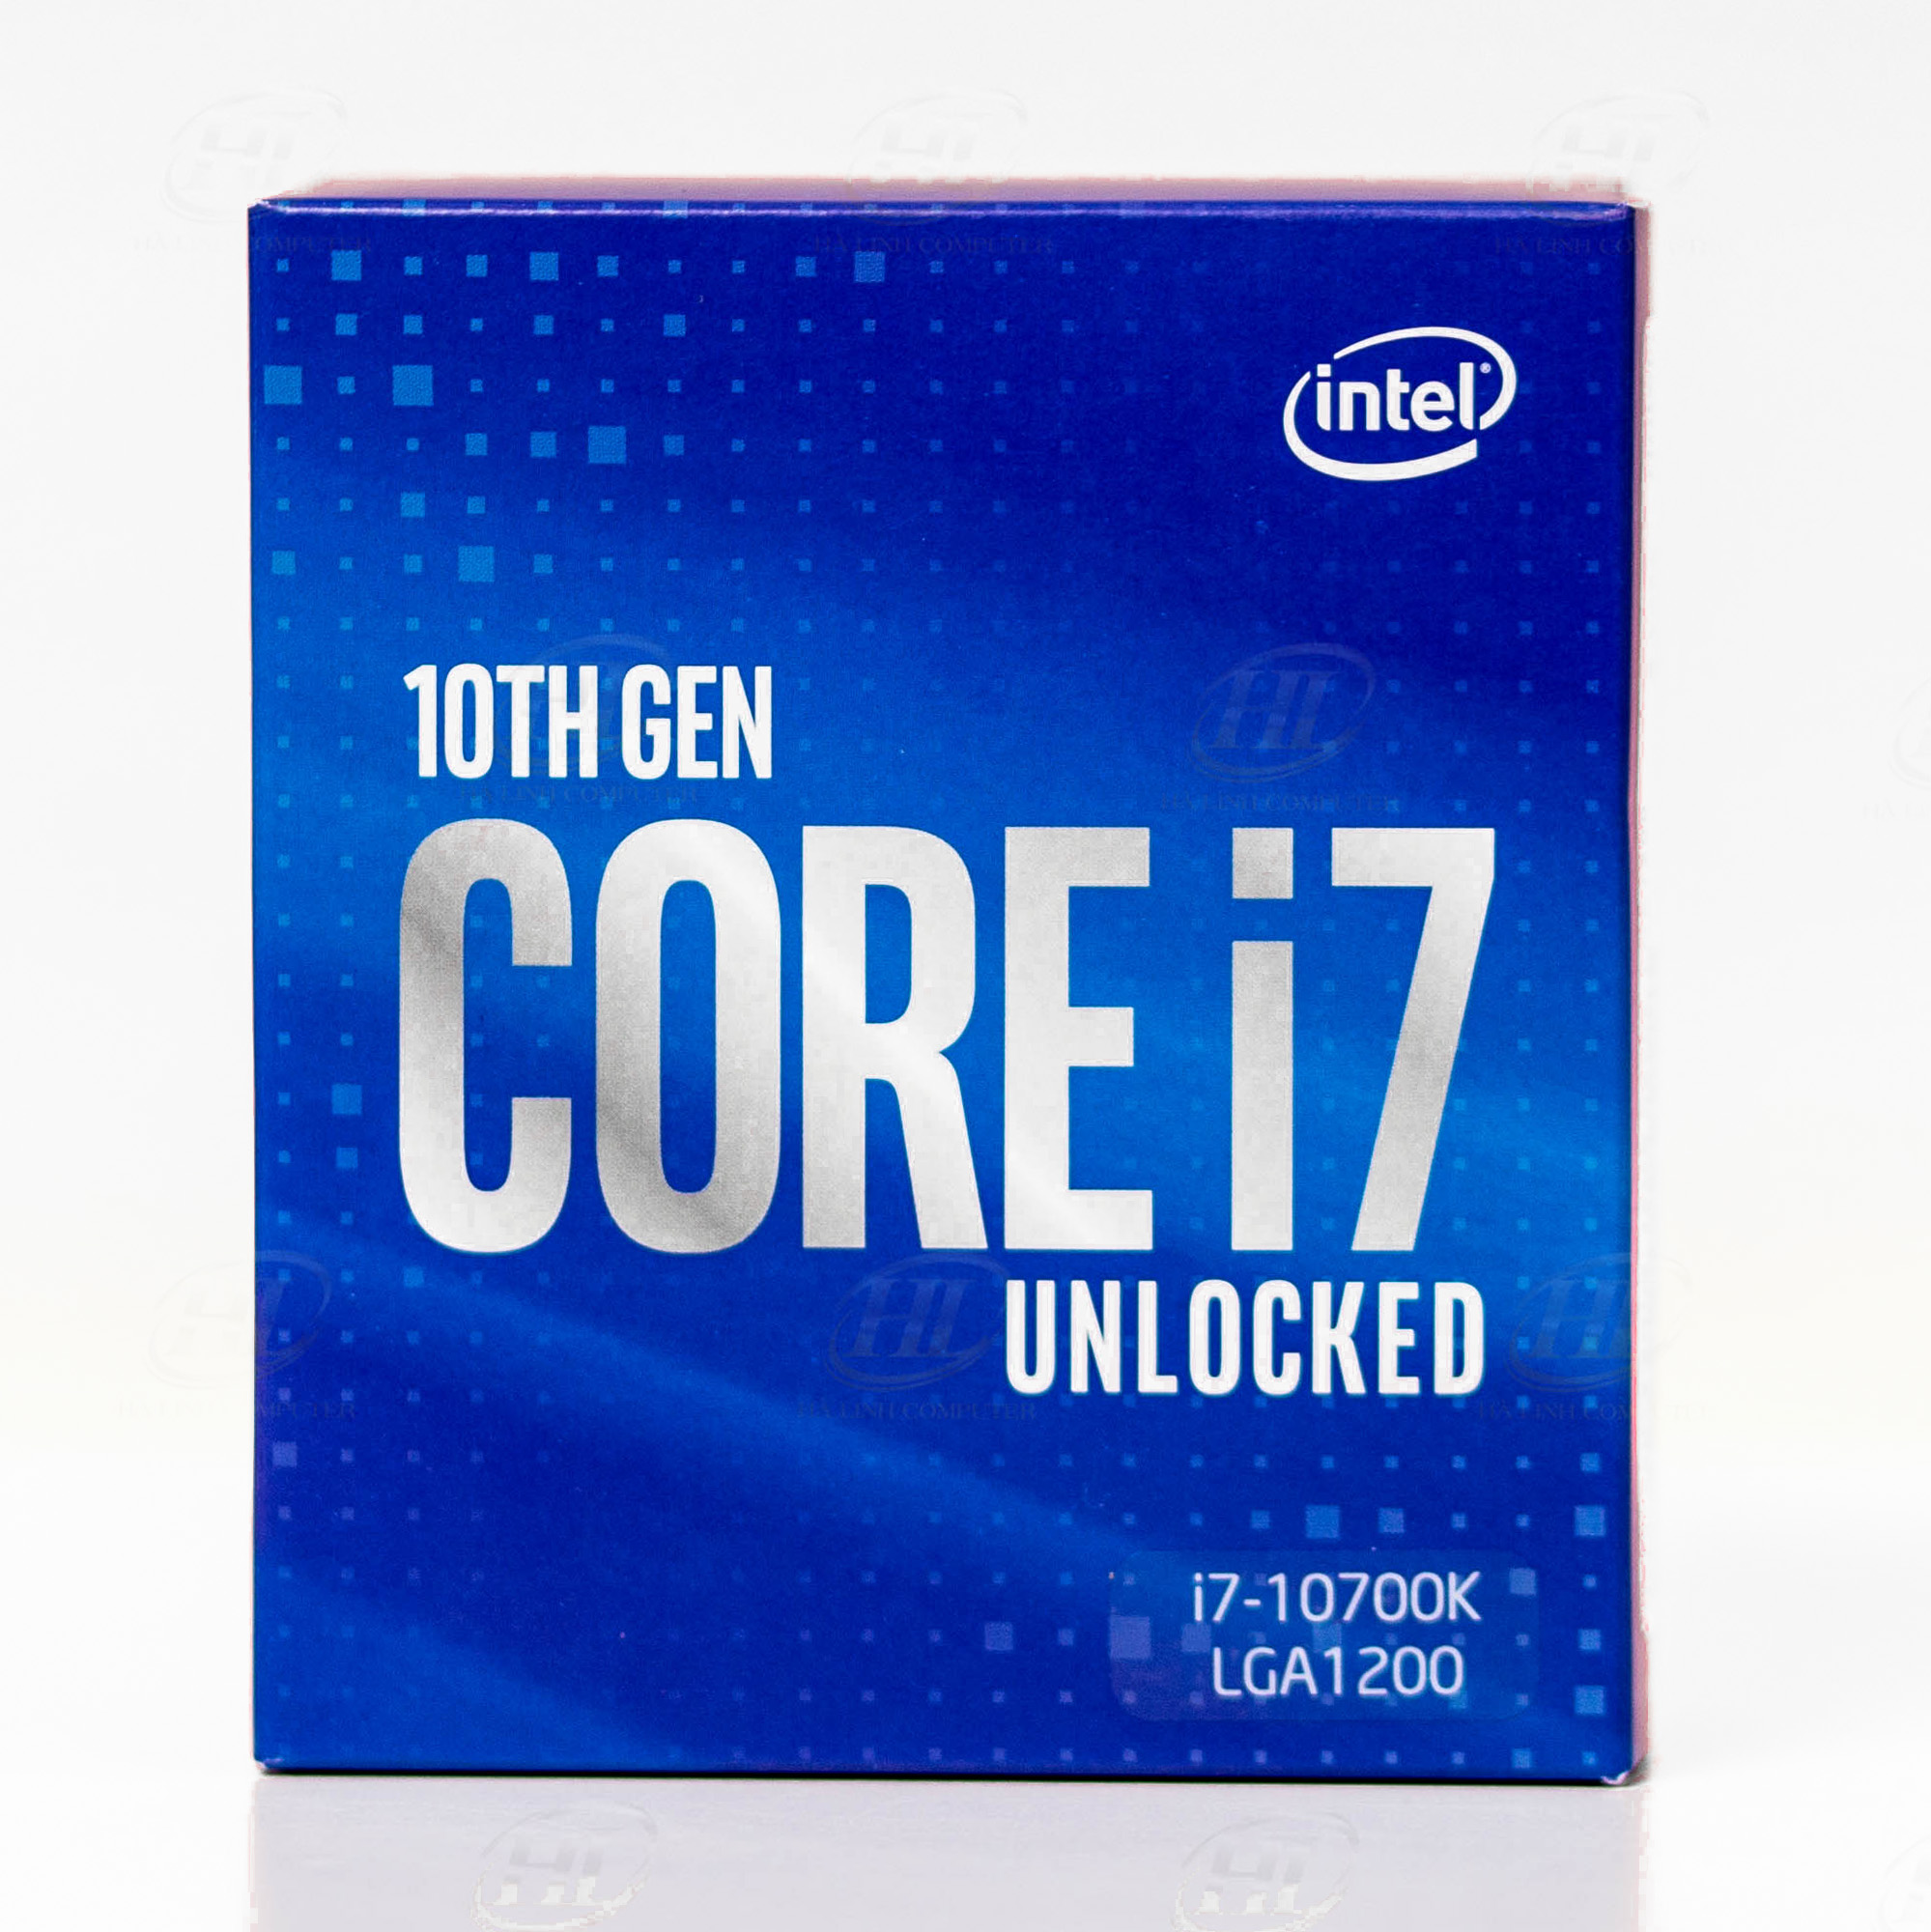 CPU Intel Core i7 10700K (3.8GHz turbo up to 5.1GHz, 8 core 16 Threads , 16MB Cache, 125W)